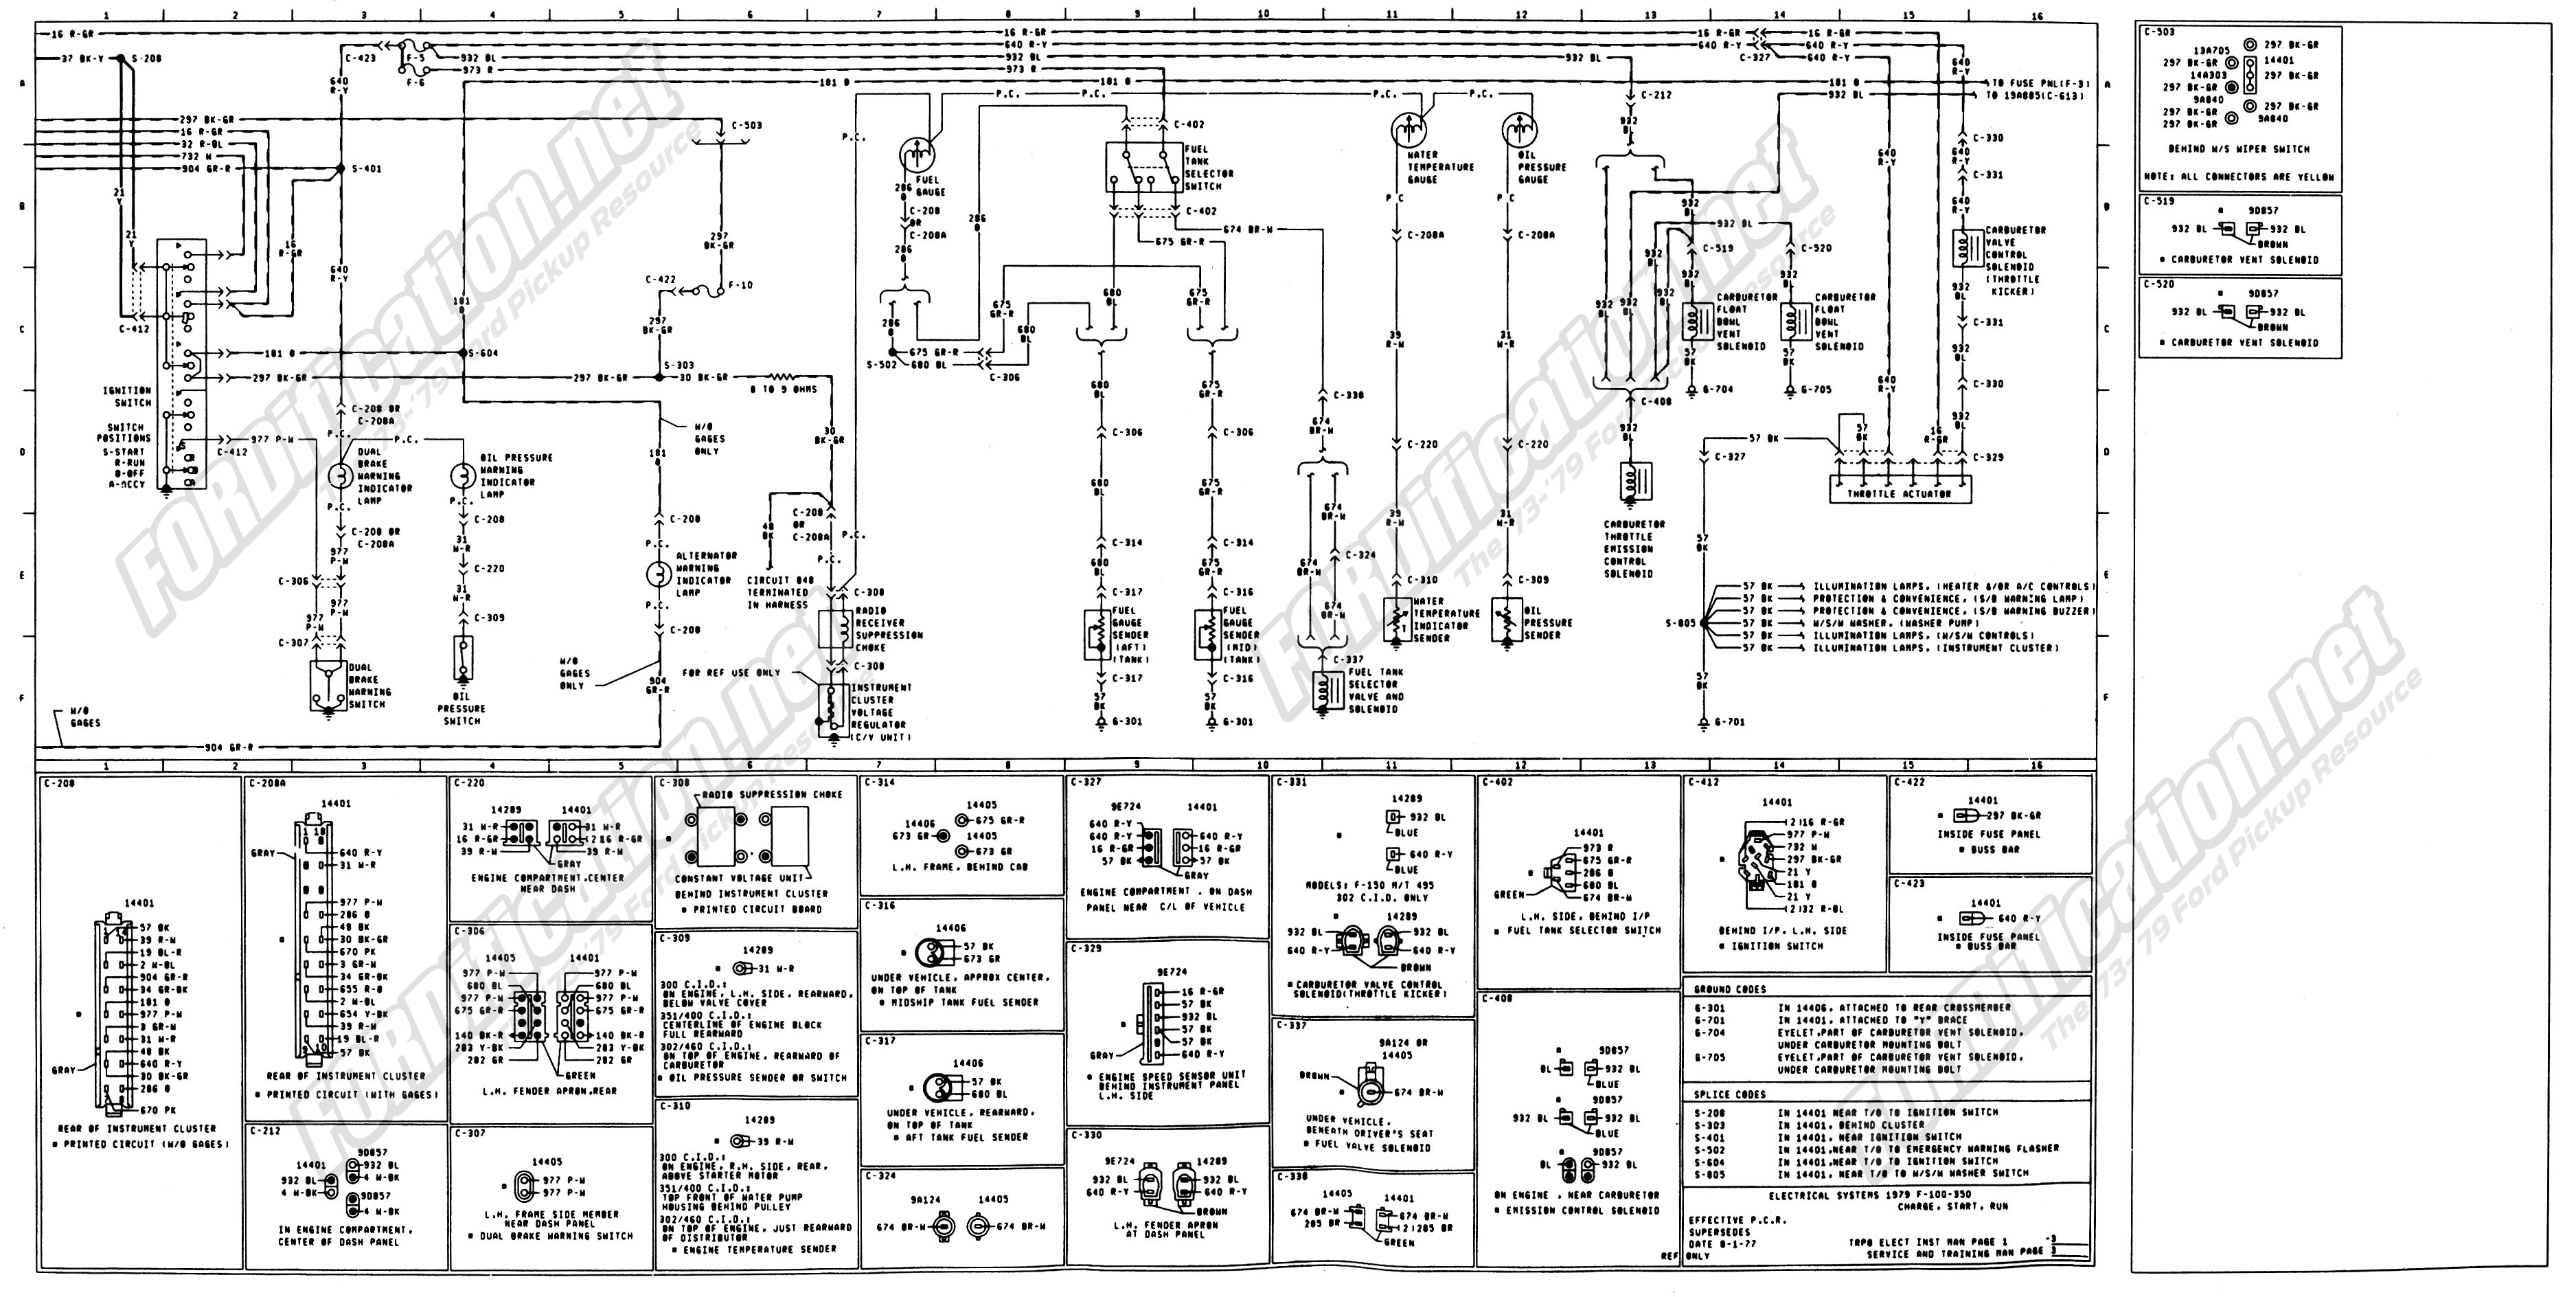 1976 Ford F 150 Wiring Diagram Wiring Diagram Approval A Approval A Zaafran It